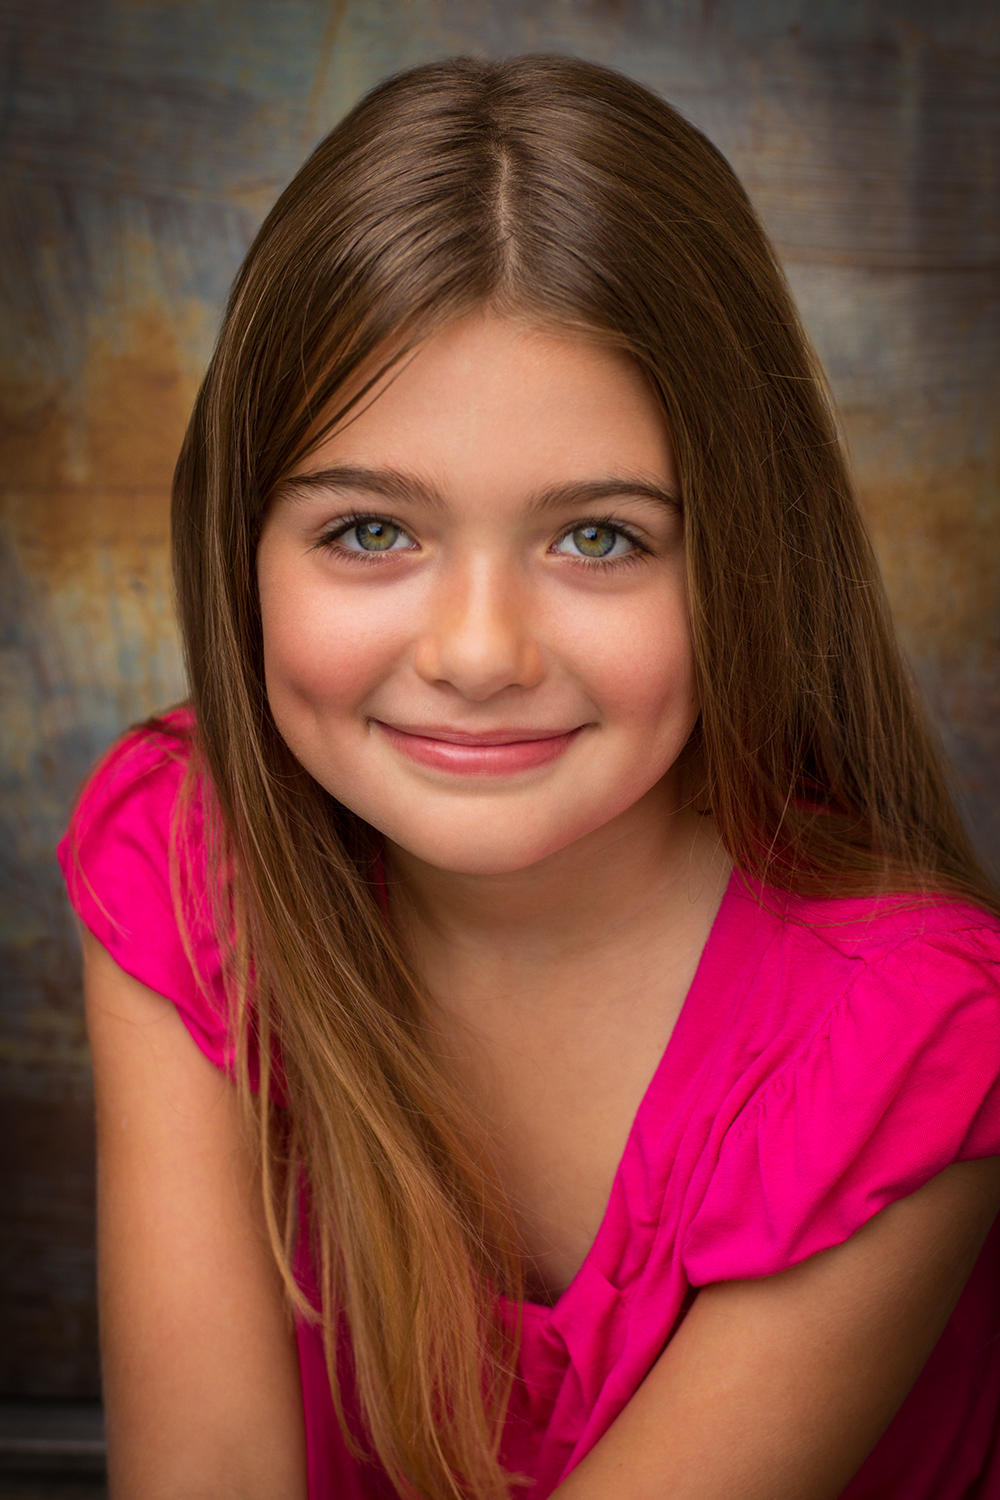 Kids Acting Headshot for Jocelyn Vogel shot by Best Kids Headshot Photographer in Boston photographer Erica Derrickson